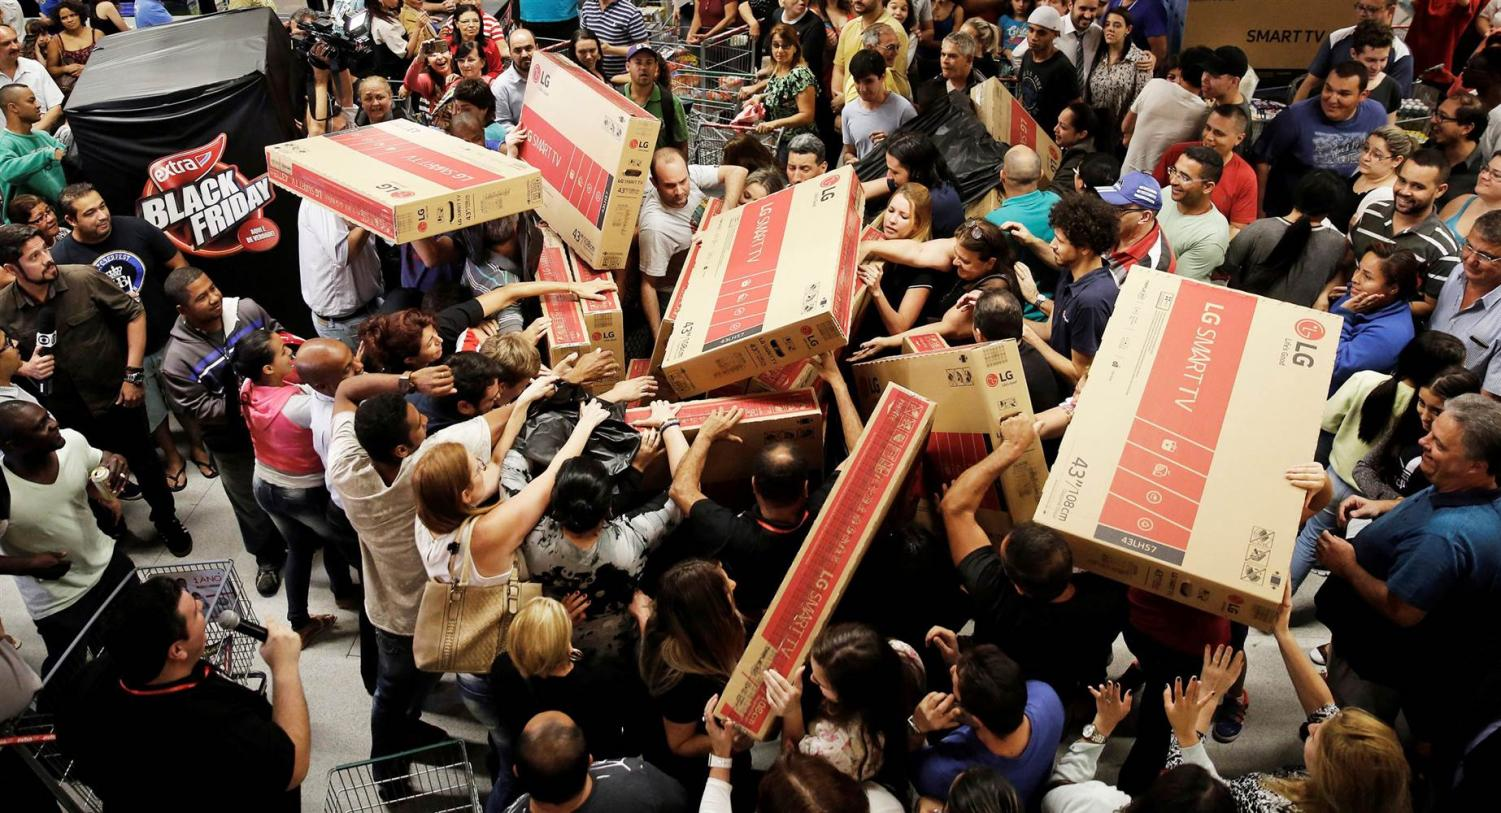 Frantic shoppers await the latest tv of 2017. Fighting every which way for a piece of the action.